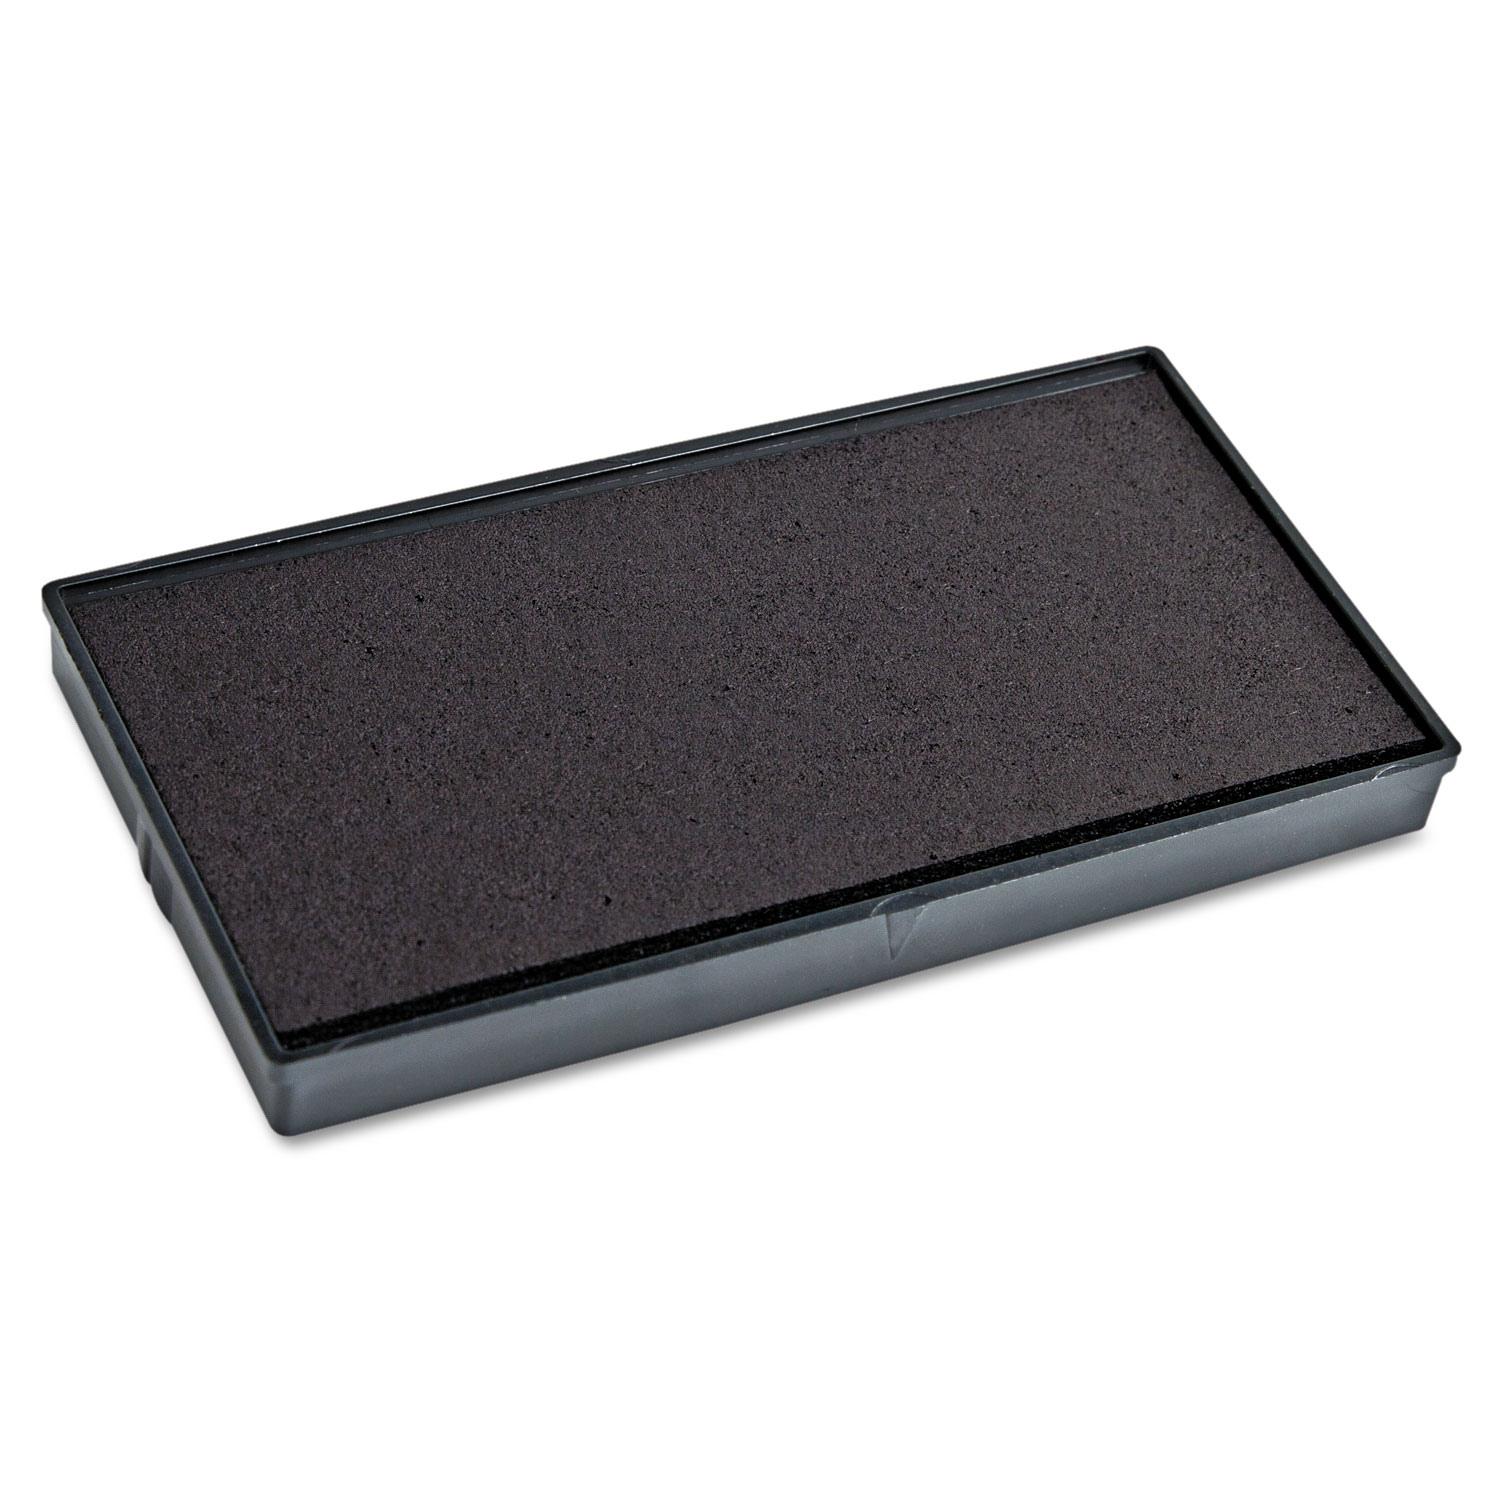 Replacement Ink Pad for 2000PLUS 1SI30PGL, Black COS065468